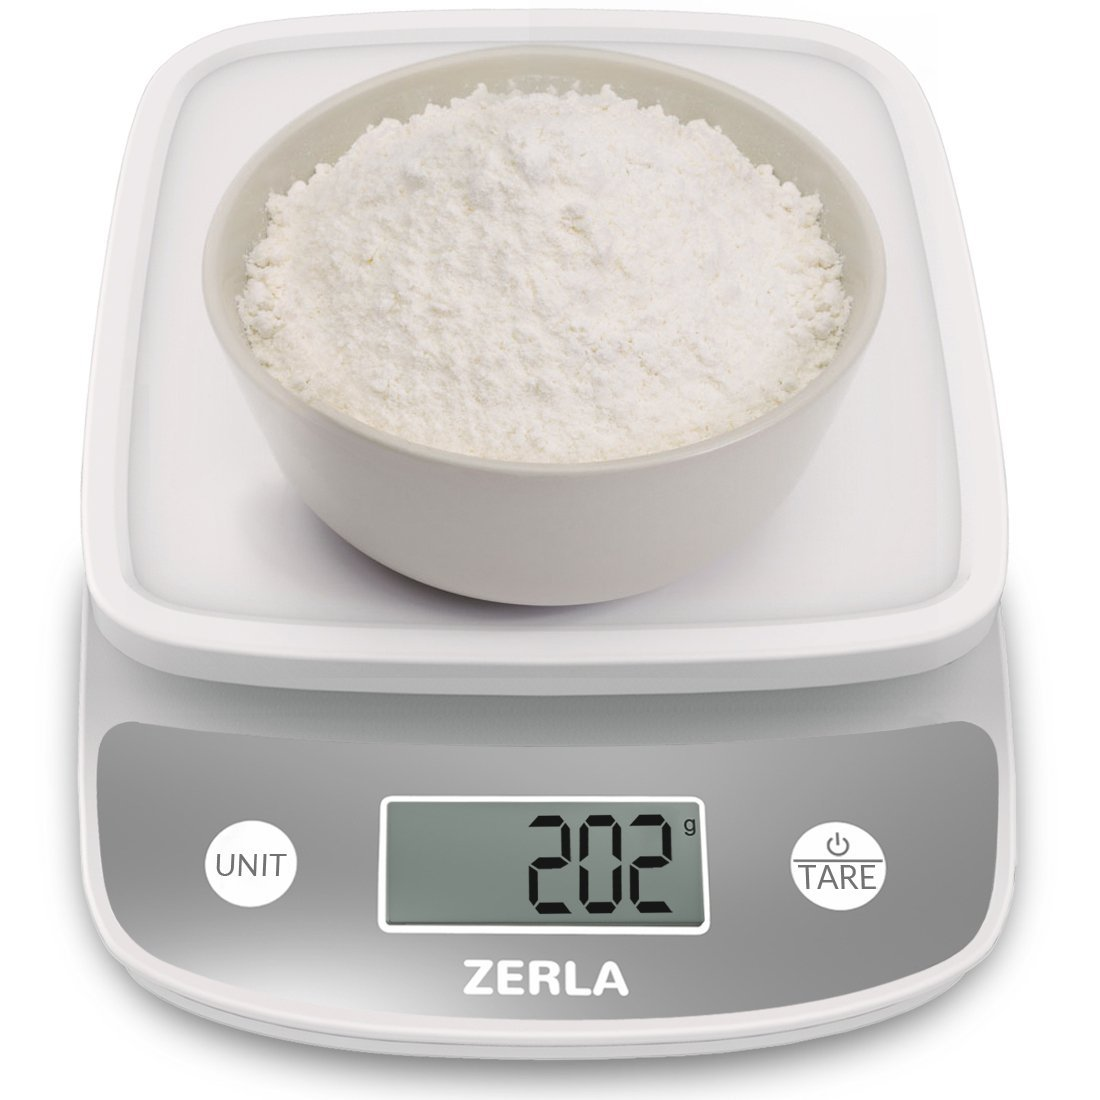 digital kitchen scales best on amazon food tracking zerla accurate